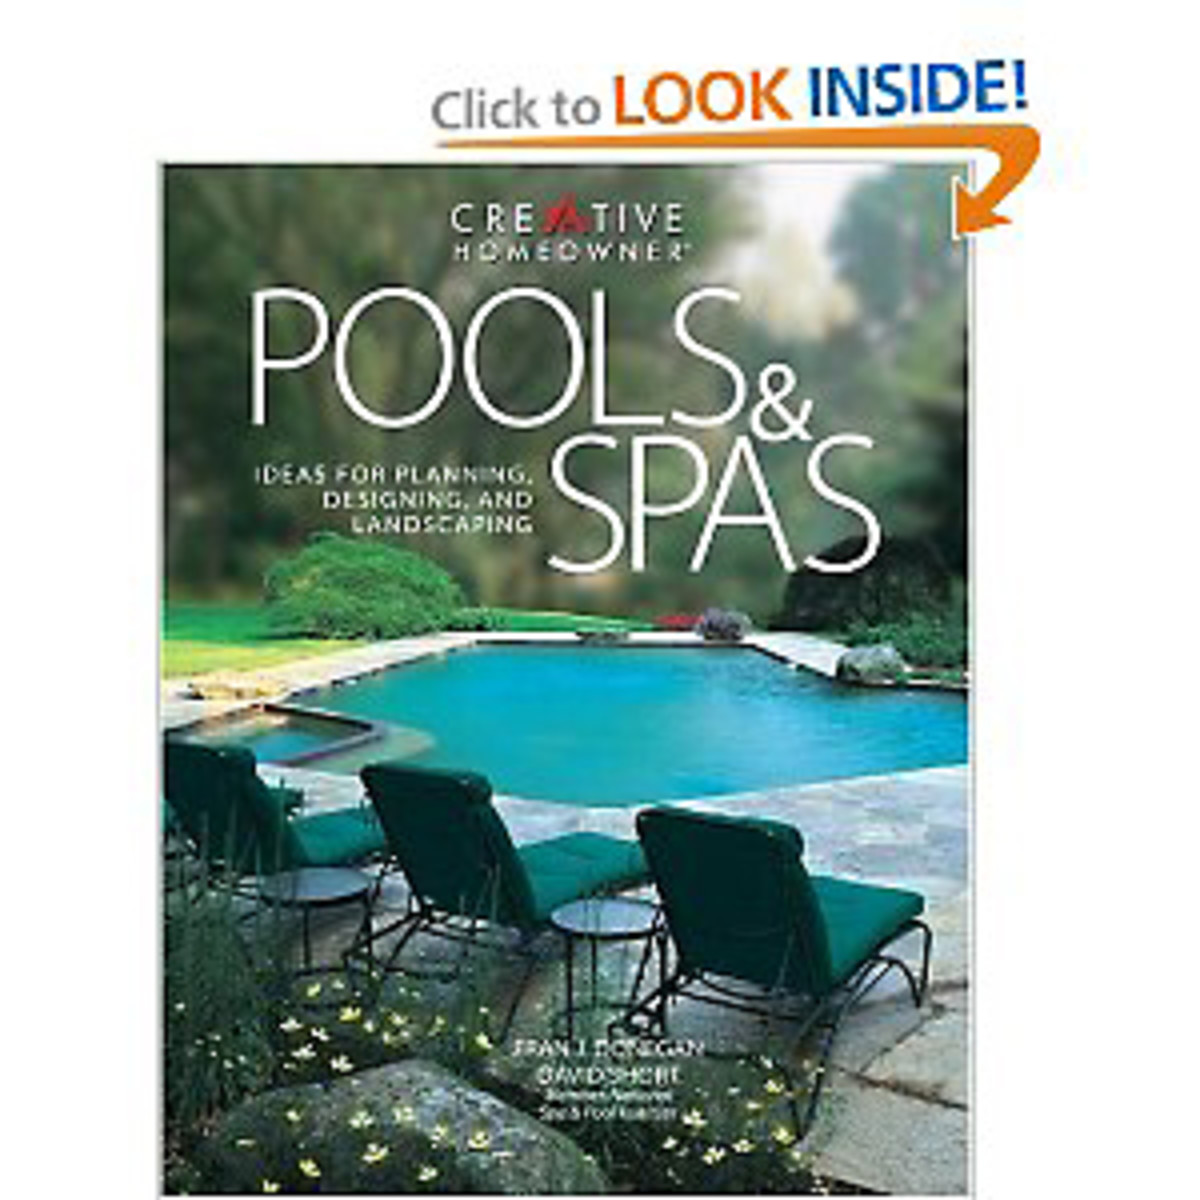 Swimming pool spa pool design books hubpages for Pool design books